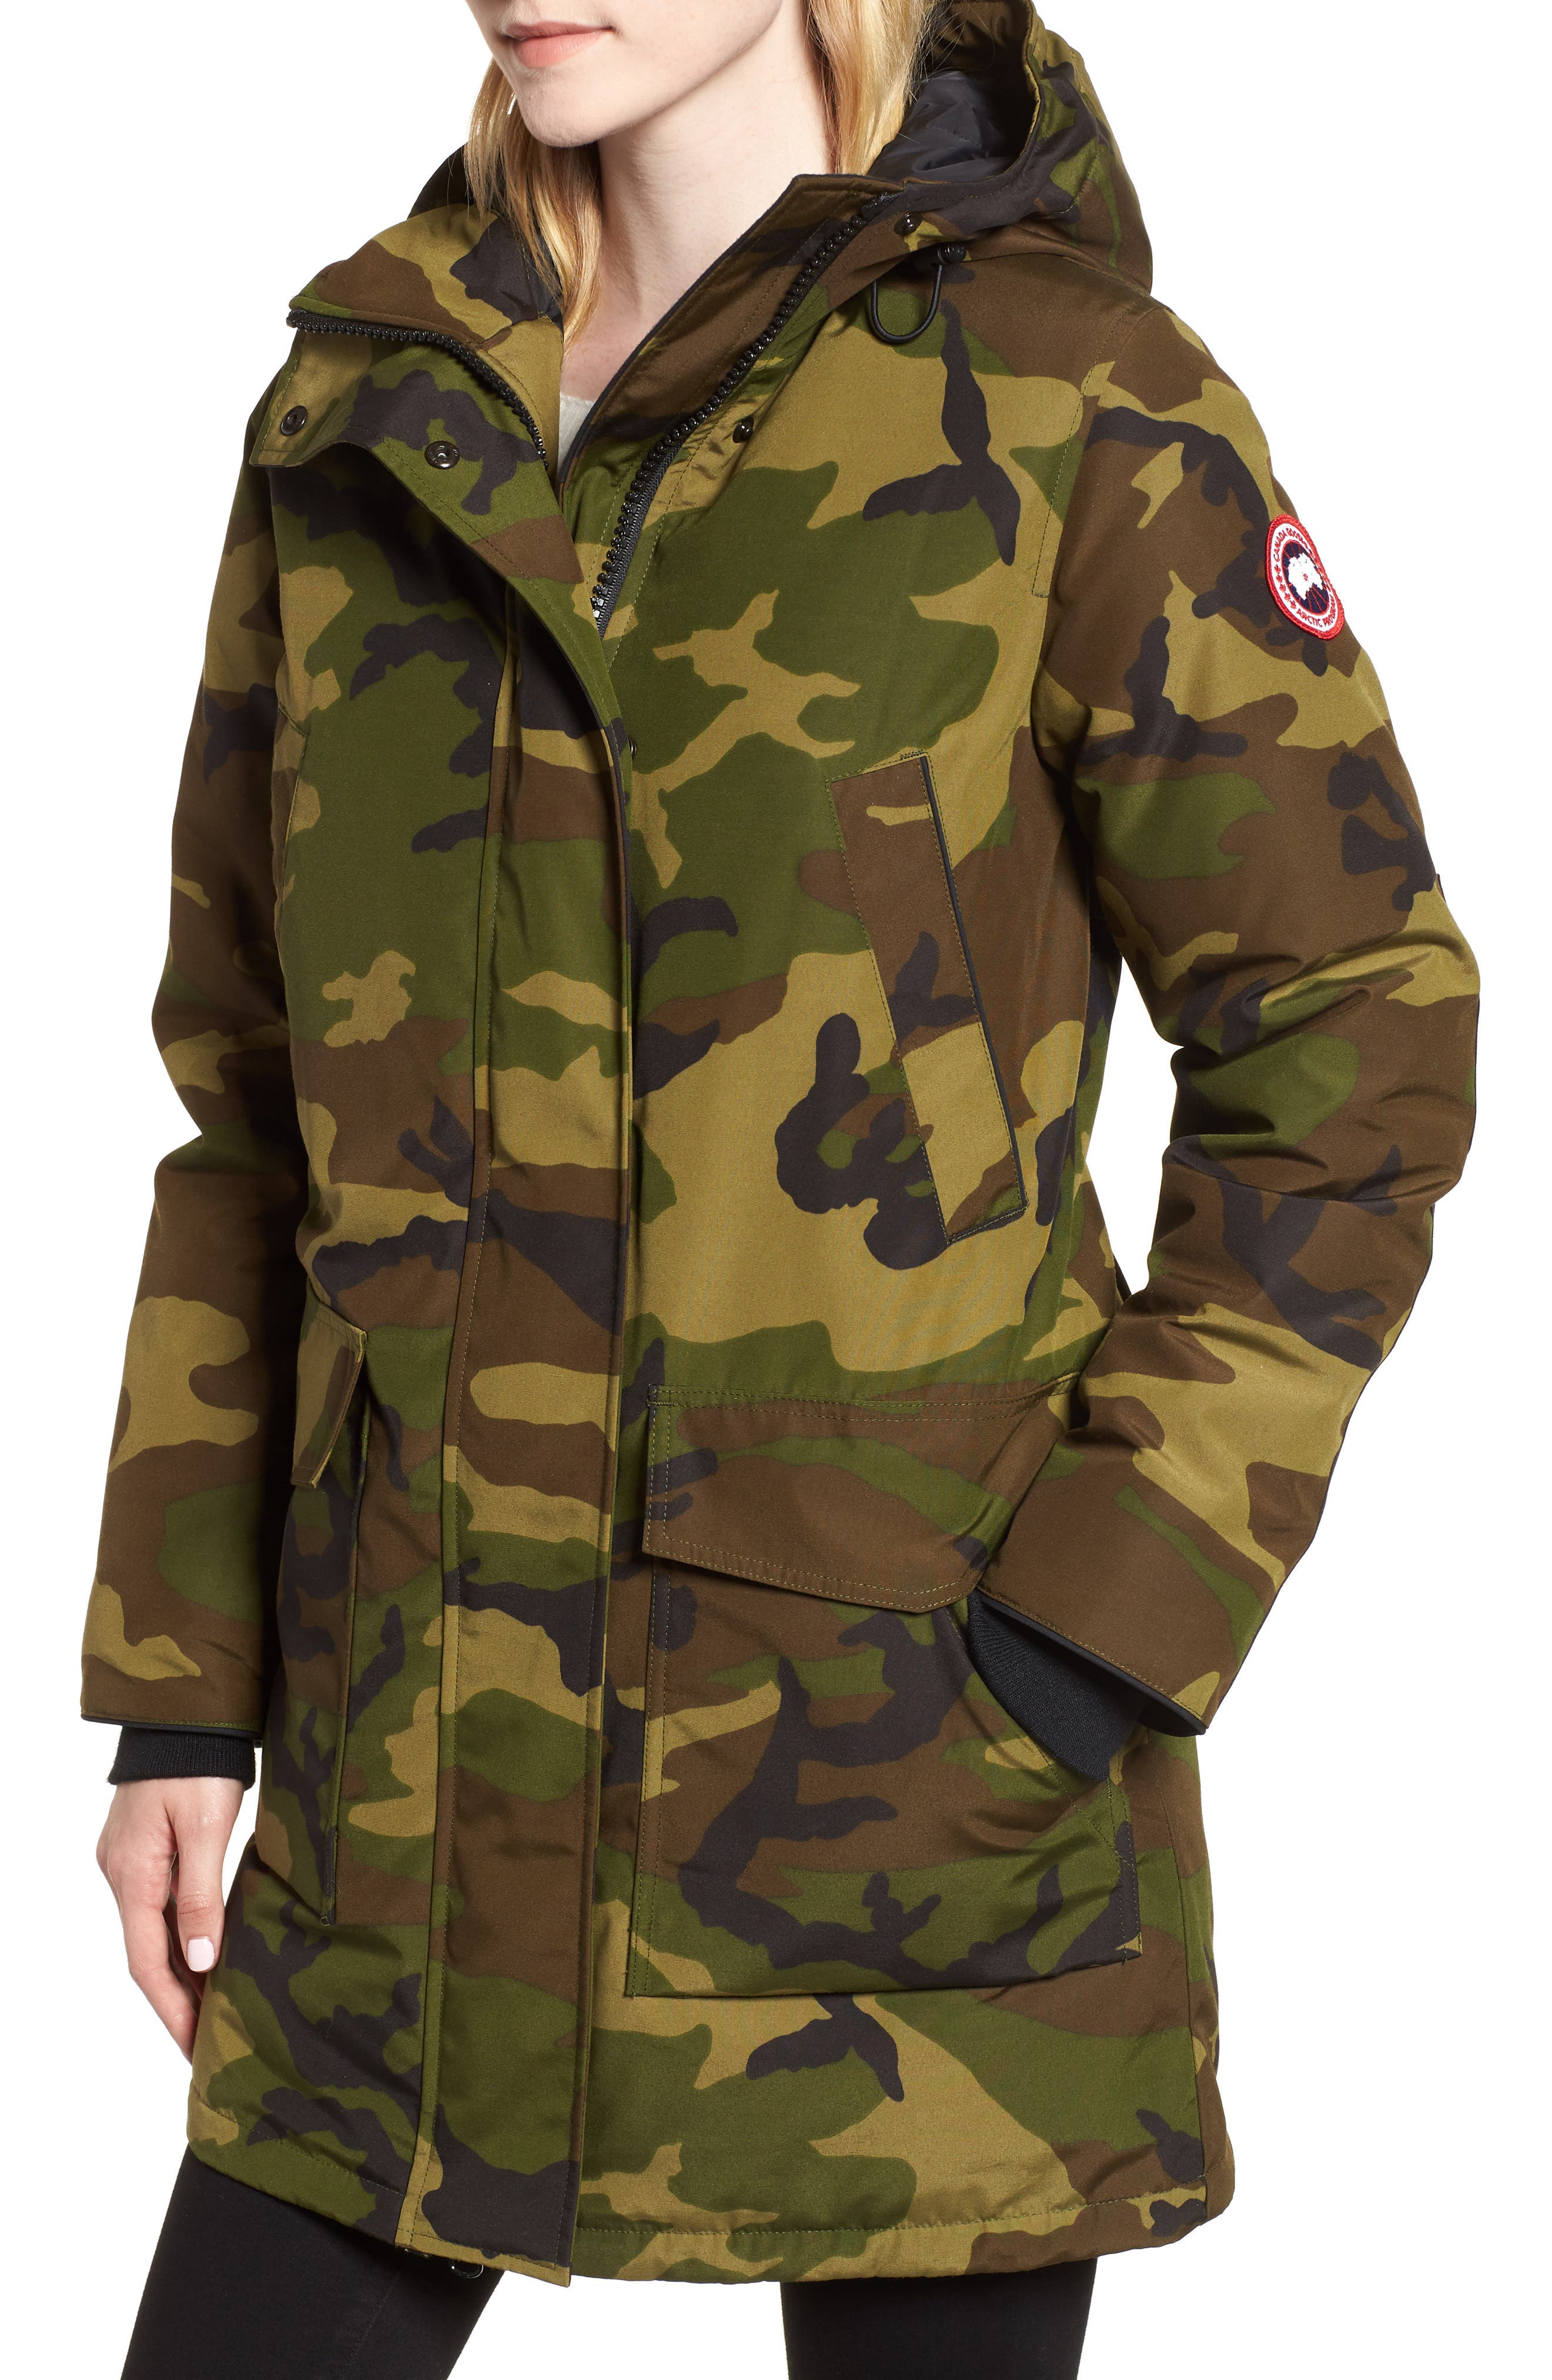 Canmore 625 Fill Power Down Parka,                             Alternate thumbnail 4, color,                             CLASSIC CAMO